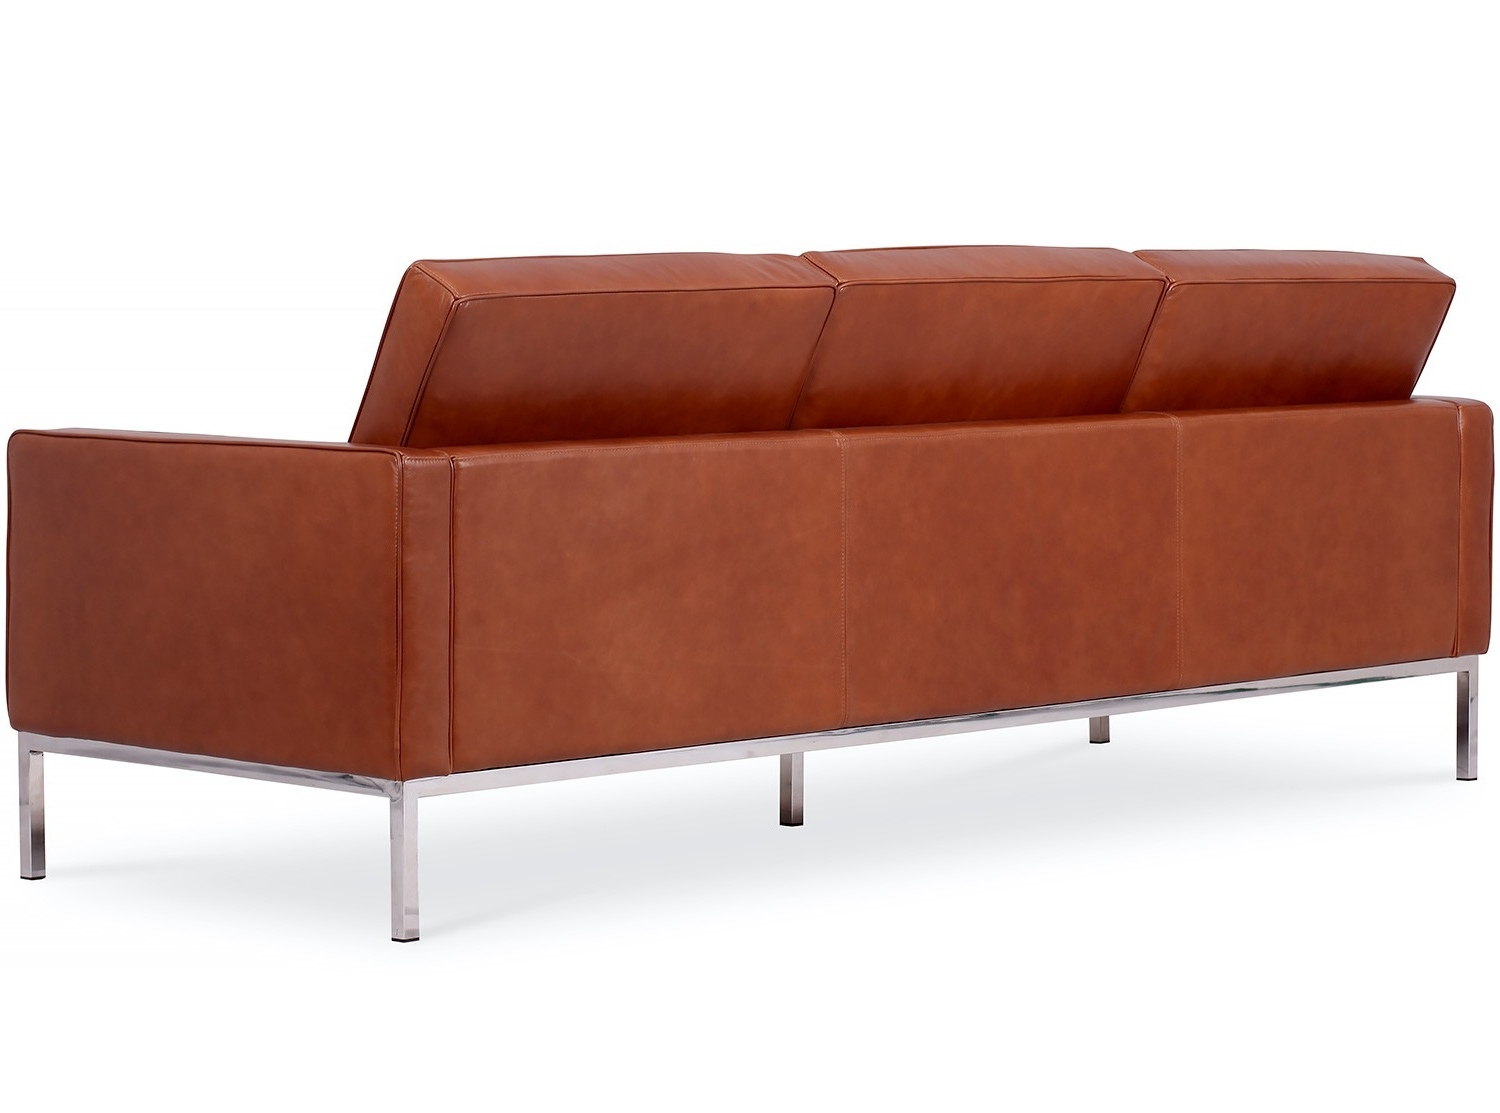 Fashionable Florence Knoll 3 Seater Sofas Within Florence Knoll Sofa 3 Seater Leather (Platinum Replica) (View 18 of 20)